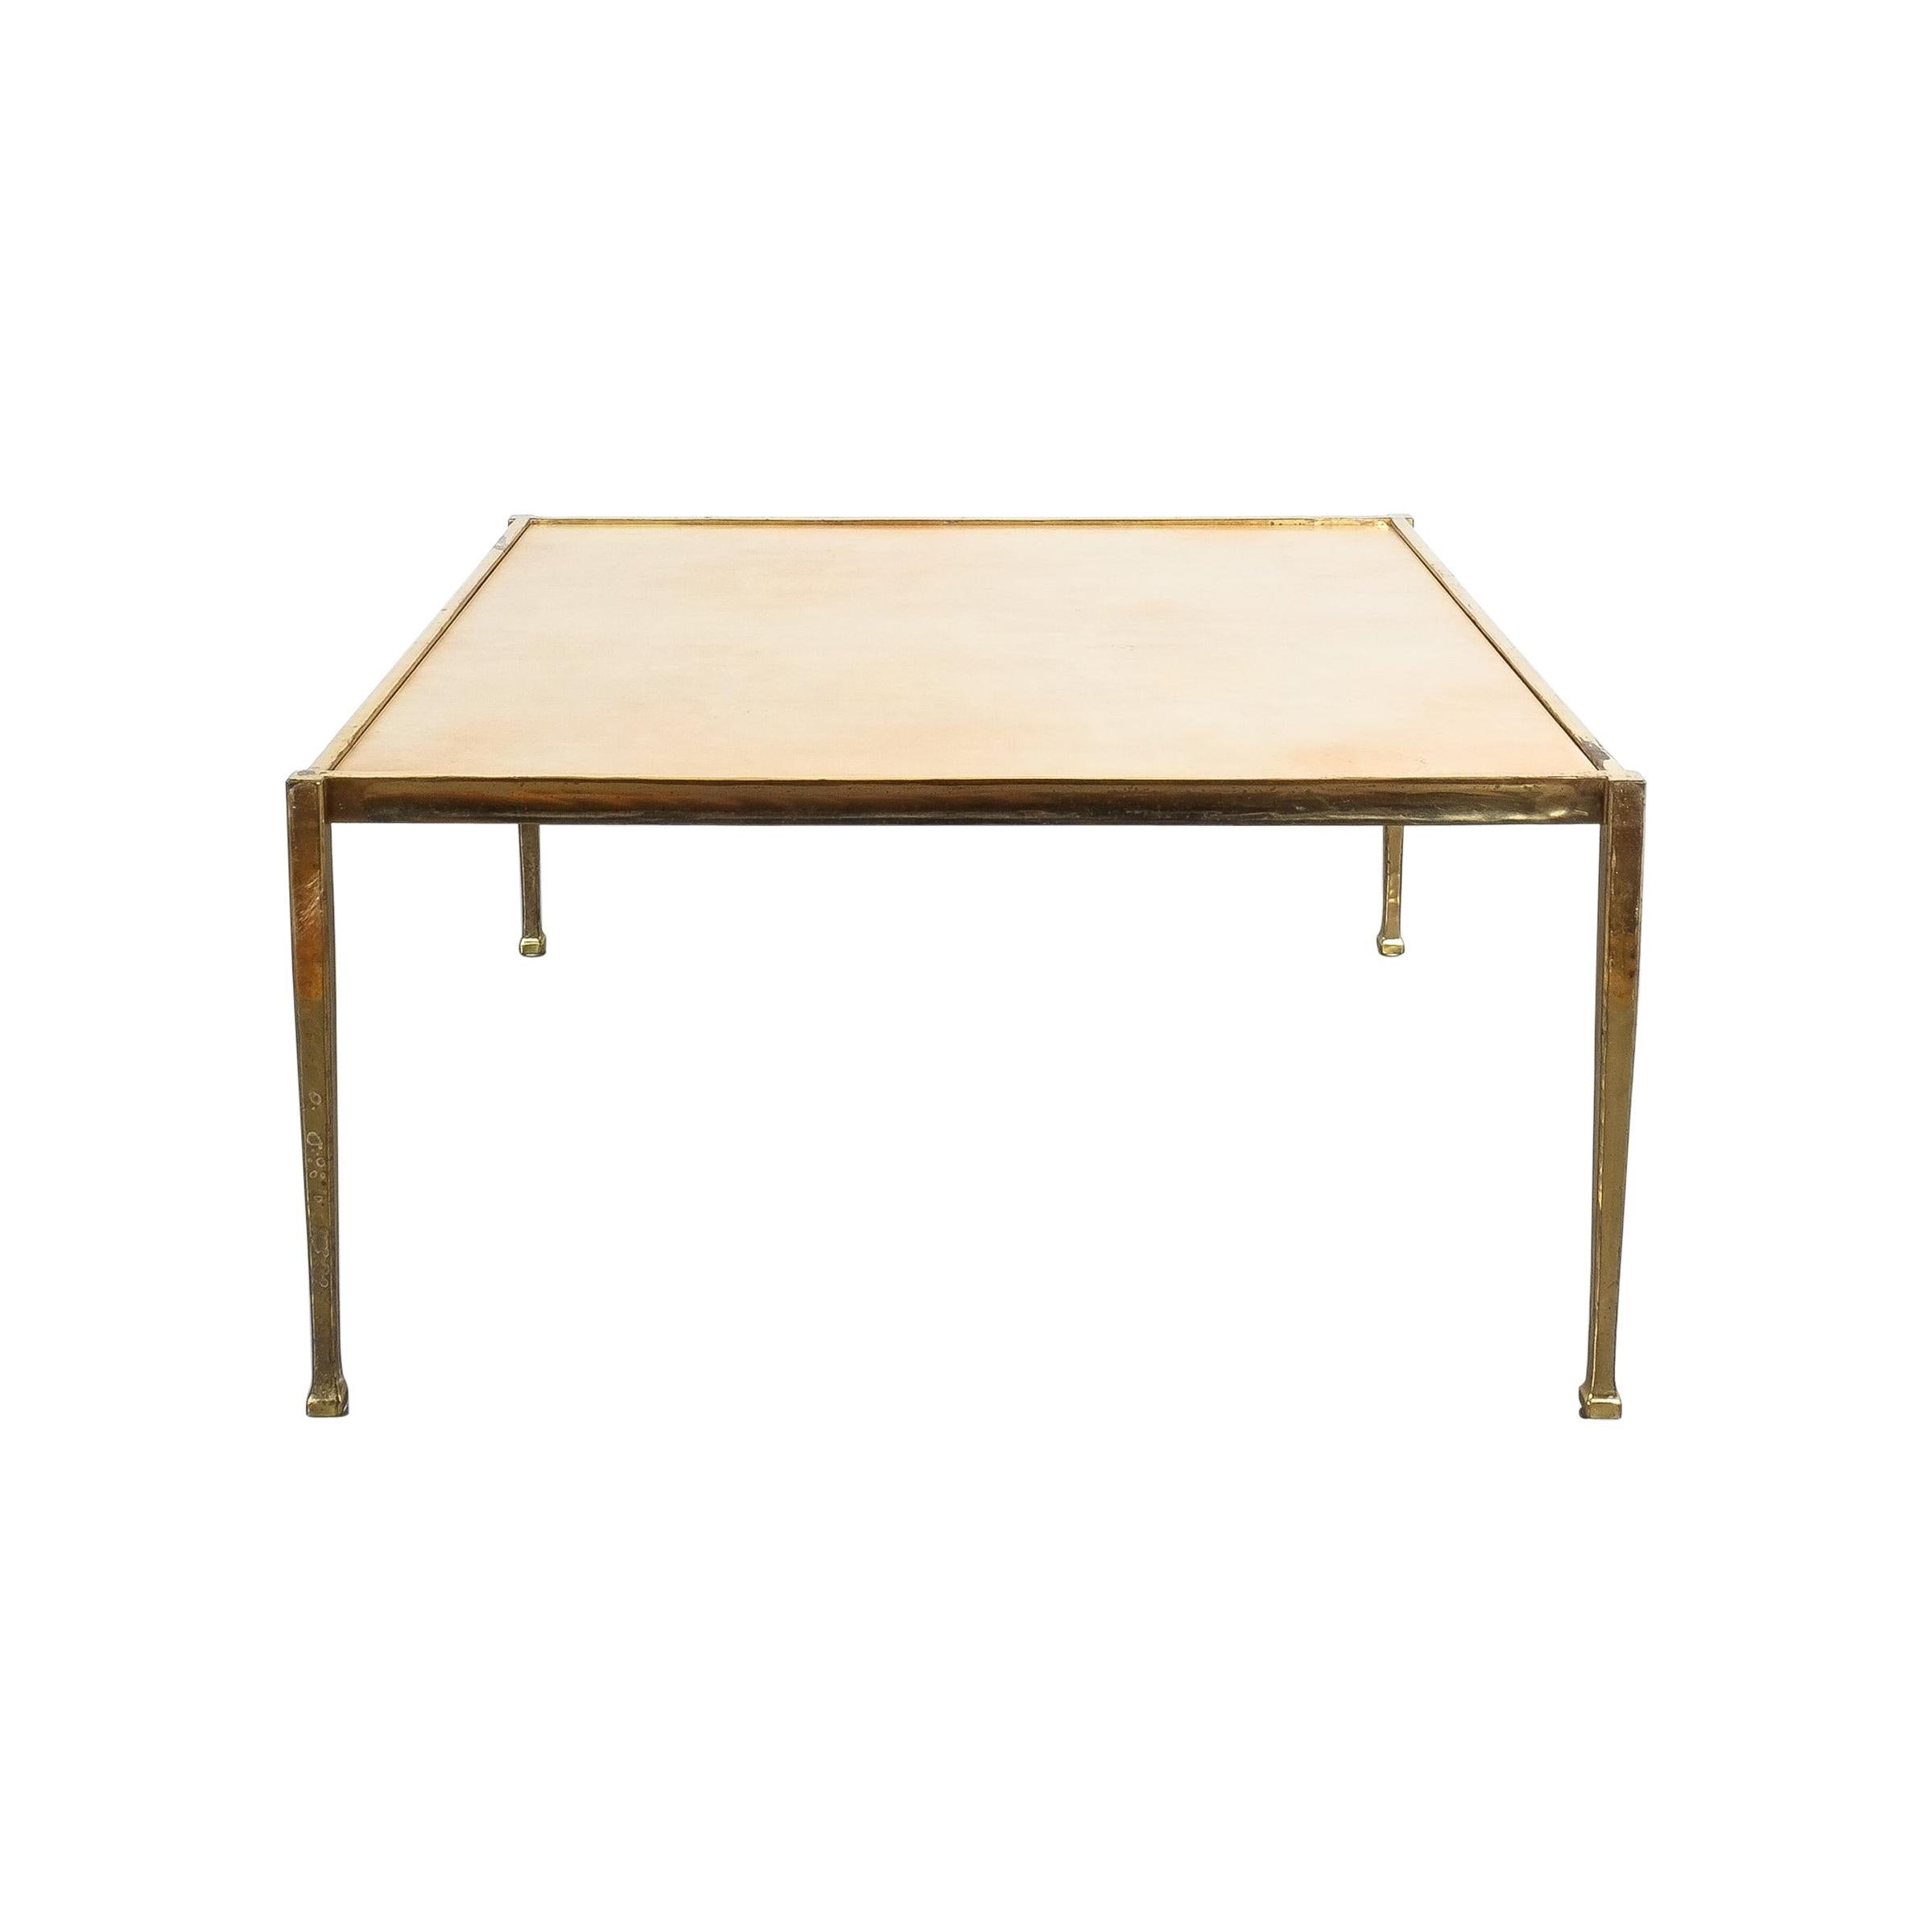 Square Solid Brass Parchment Coffee Table, France, 1965